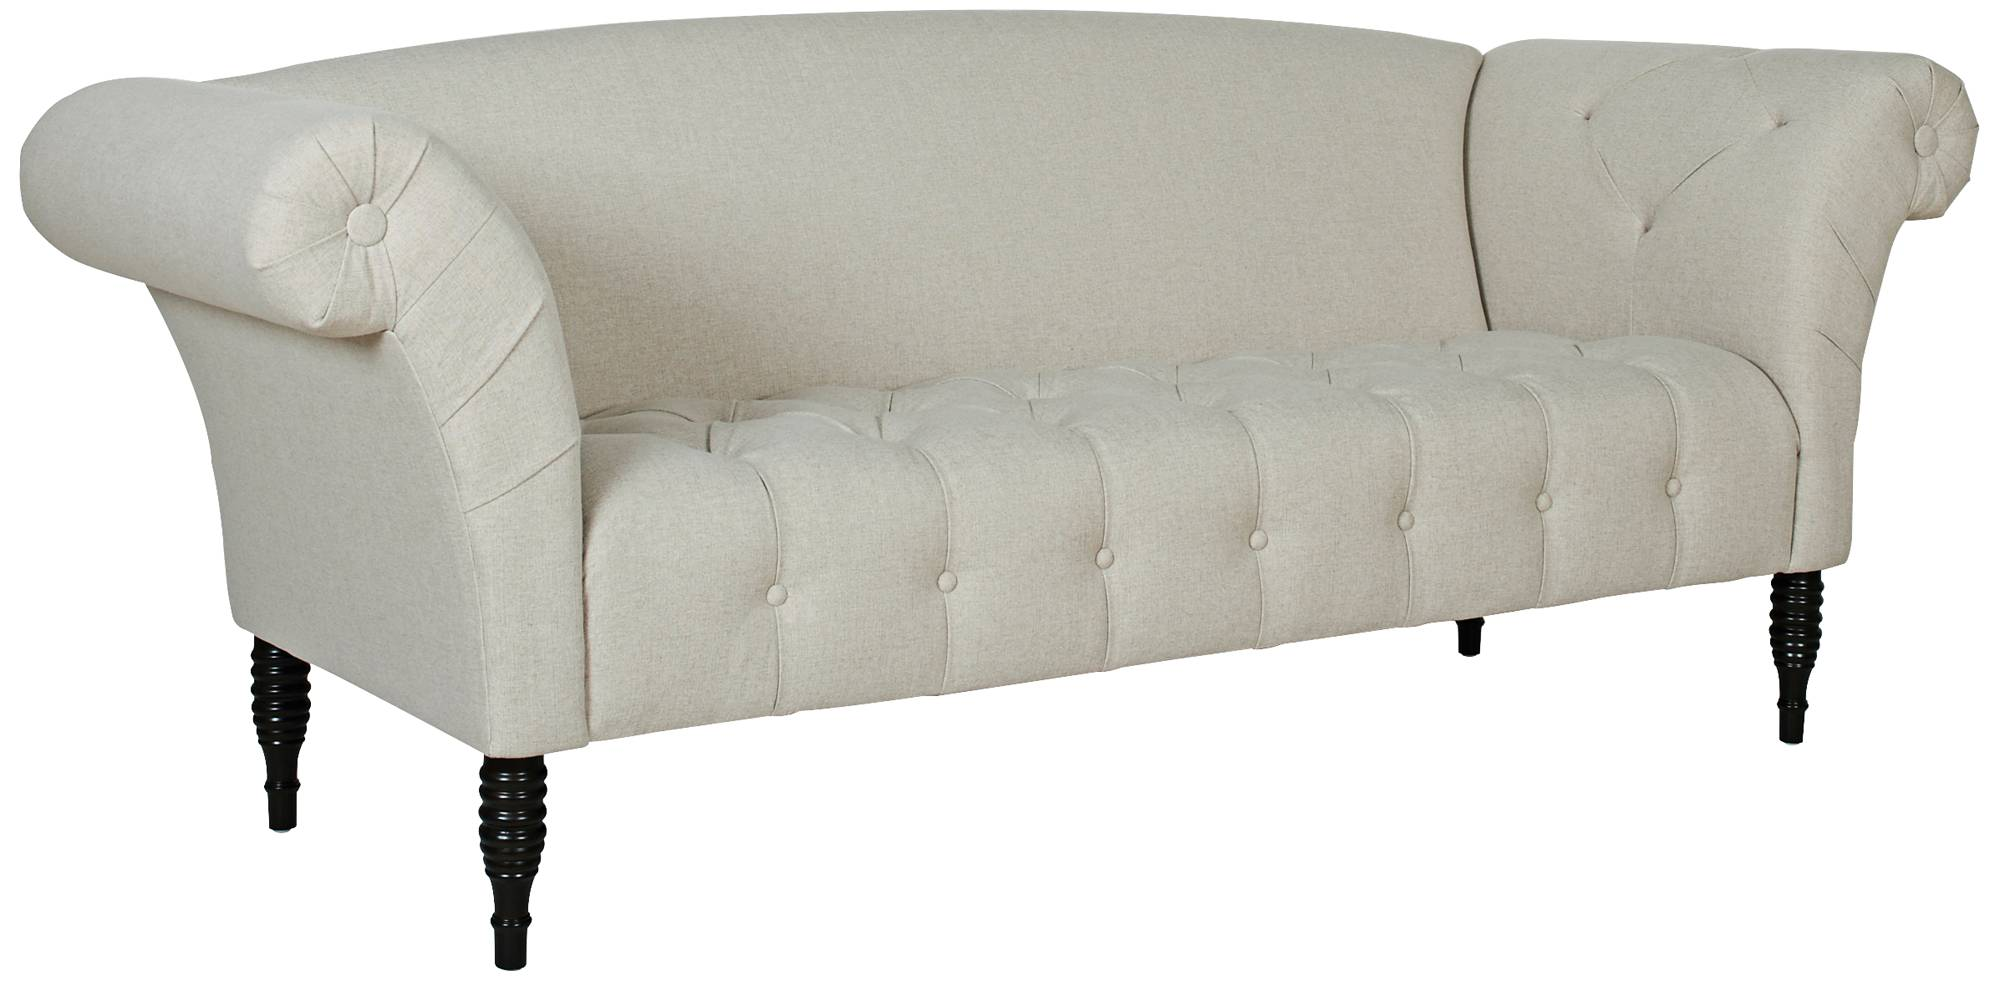 Response Sunny 89 Quot Wide Fabric Tufted Sofa 13j25